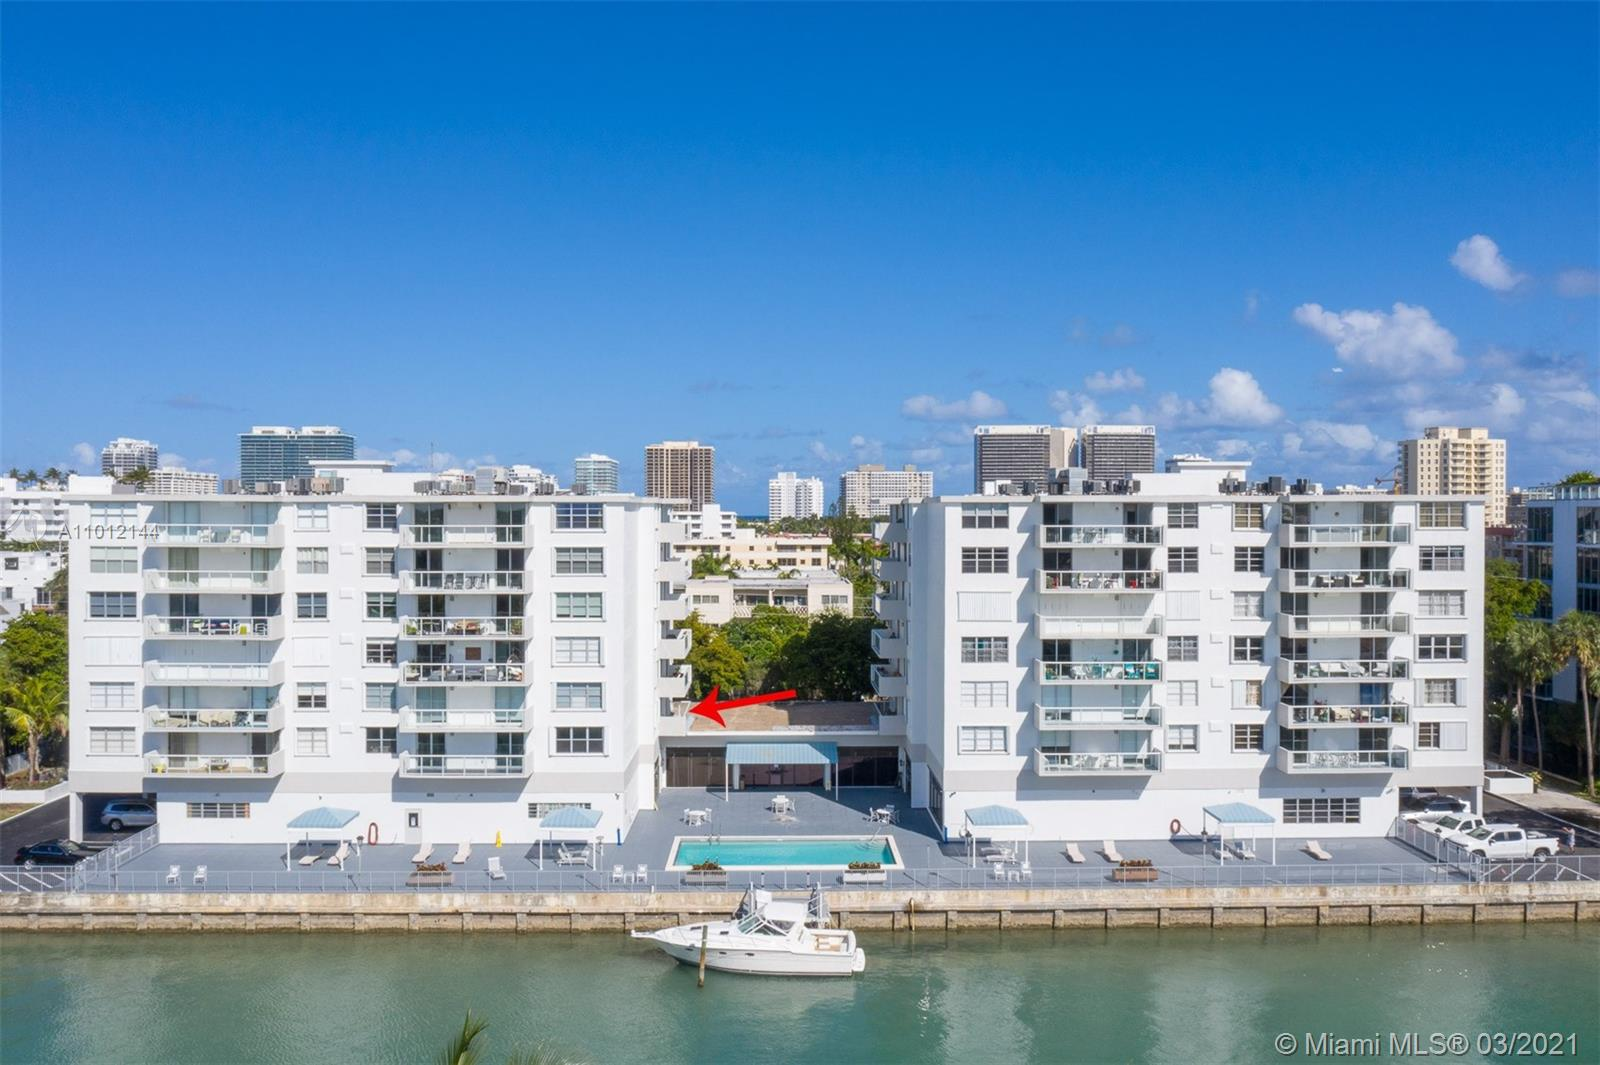 Enjoy spectacular sunsets and water views from the terrace of this oversized 2 beds 2.5 baths condo with nearly 1500 sq ft of living space. This unit comes with washer and dryer, one covered parking and private storage. Amenities include canal front pool deck, 24 hour concierge, heated pool, exercise room and dockage. Building has undergone gorgeous remodeling which includes glass balconies and updated hallways. Located in the heart of Bay Harbor within walking distance to top rated schools, fine dining, beaches and Bal Harbor Shops.